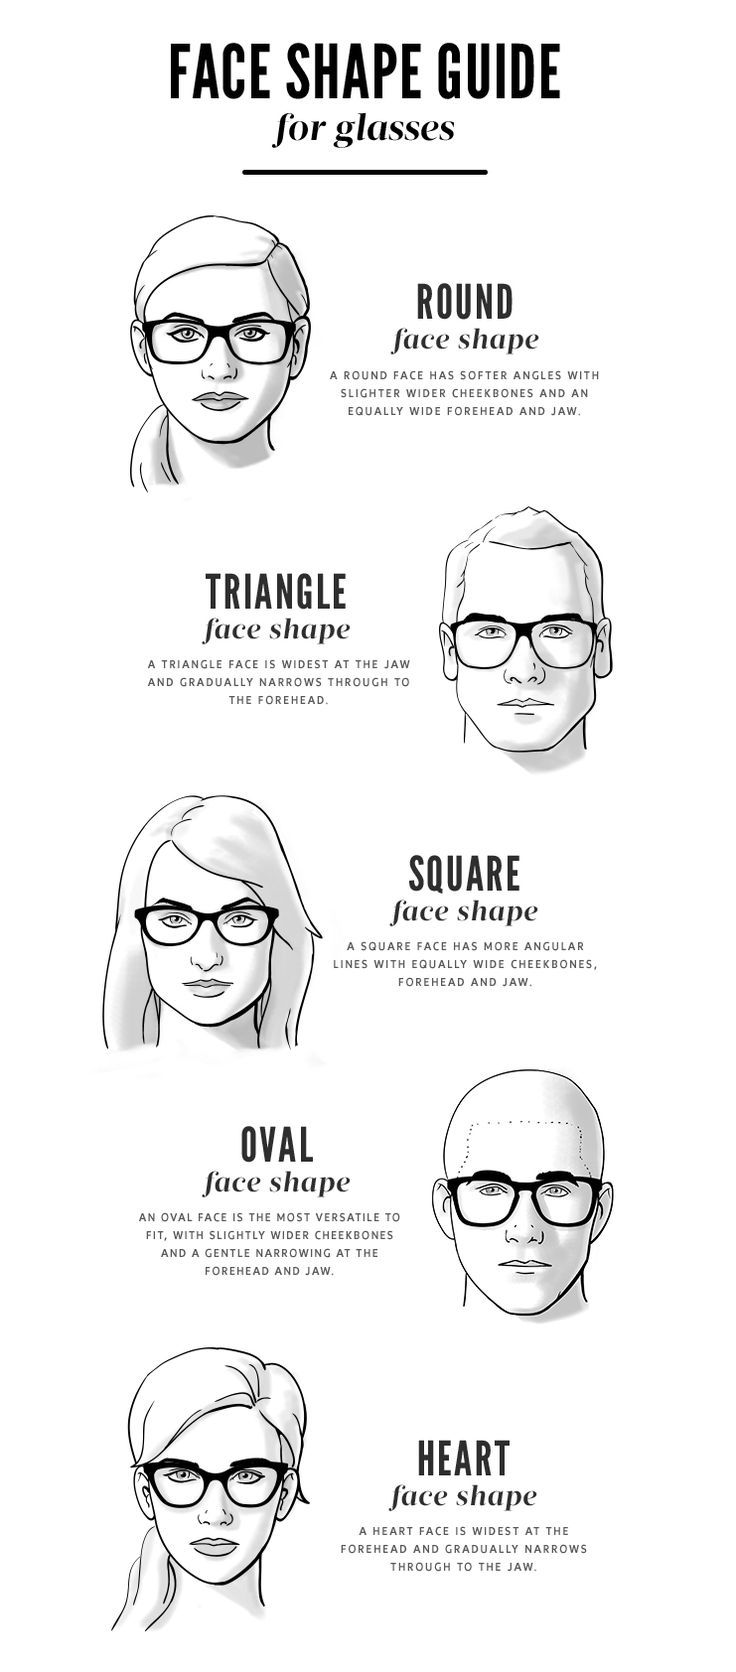 Glasses Frame Shape For Face Shape : Face Shape Guide for Glasses Which glasses shape best ...